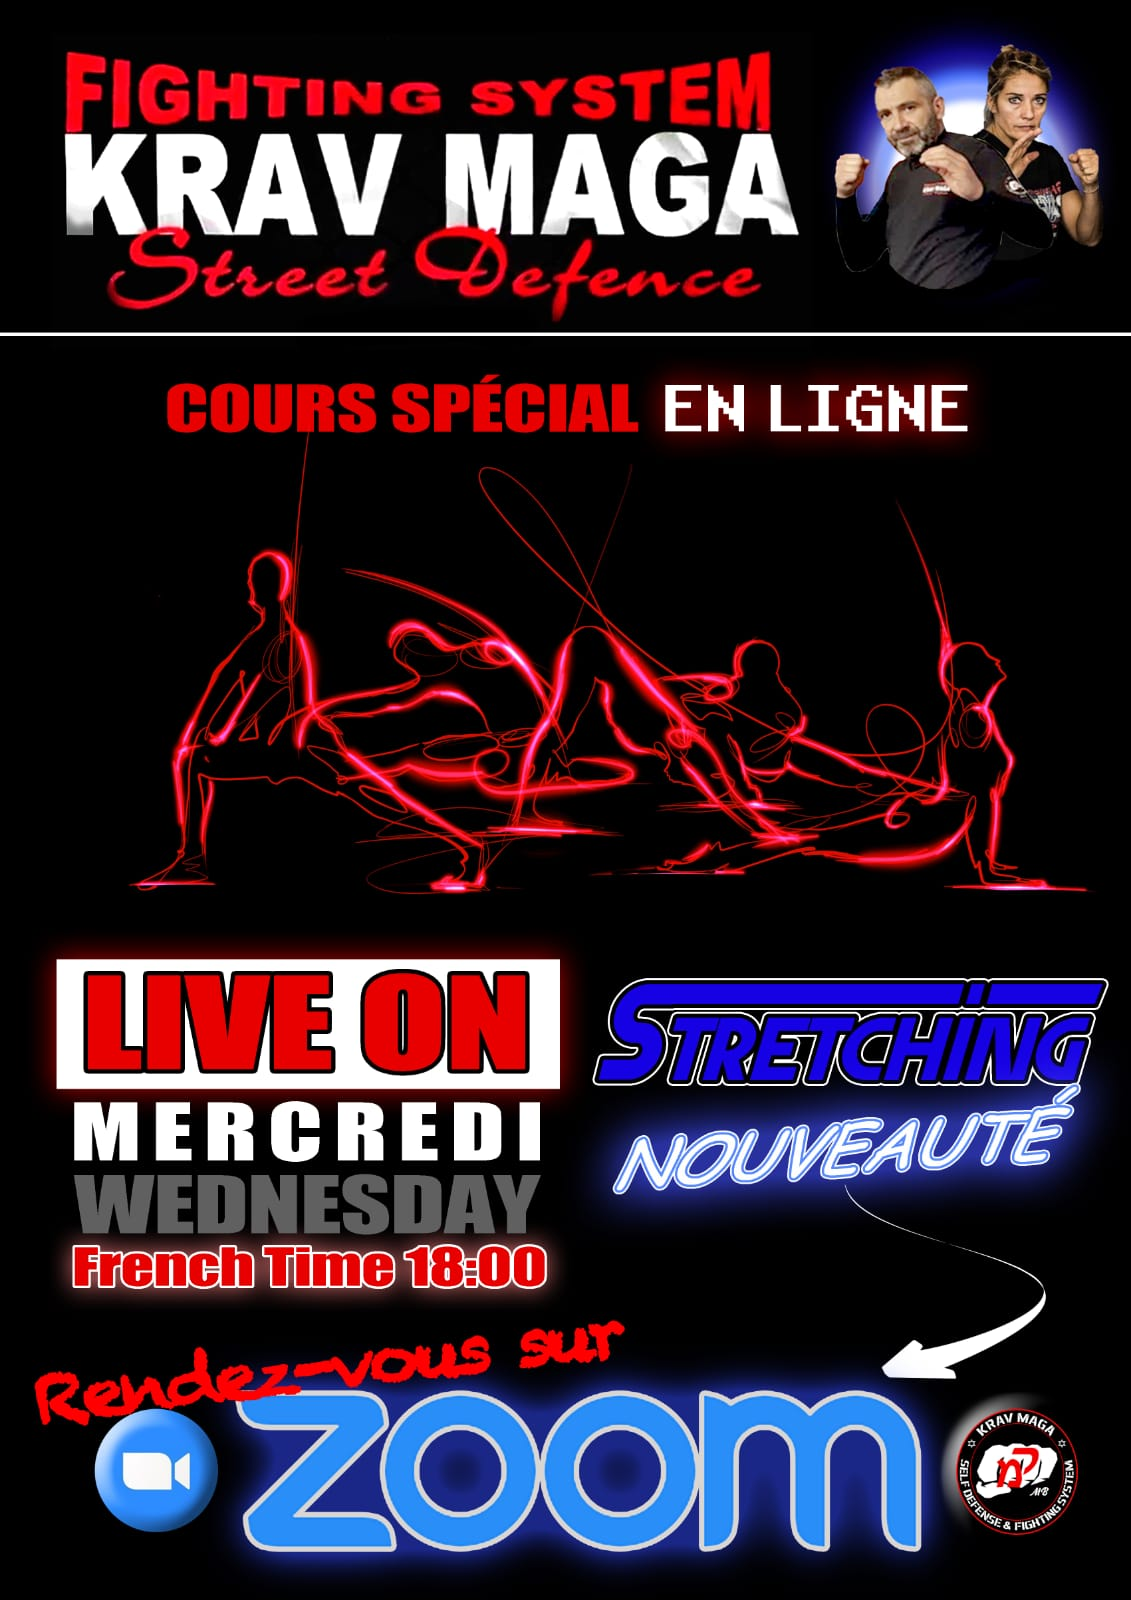 Cours en ligne stretching